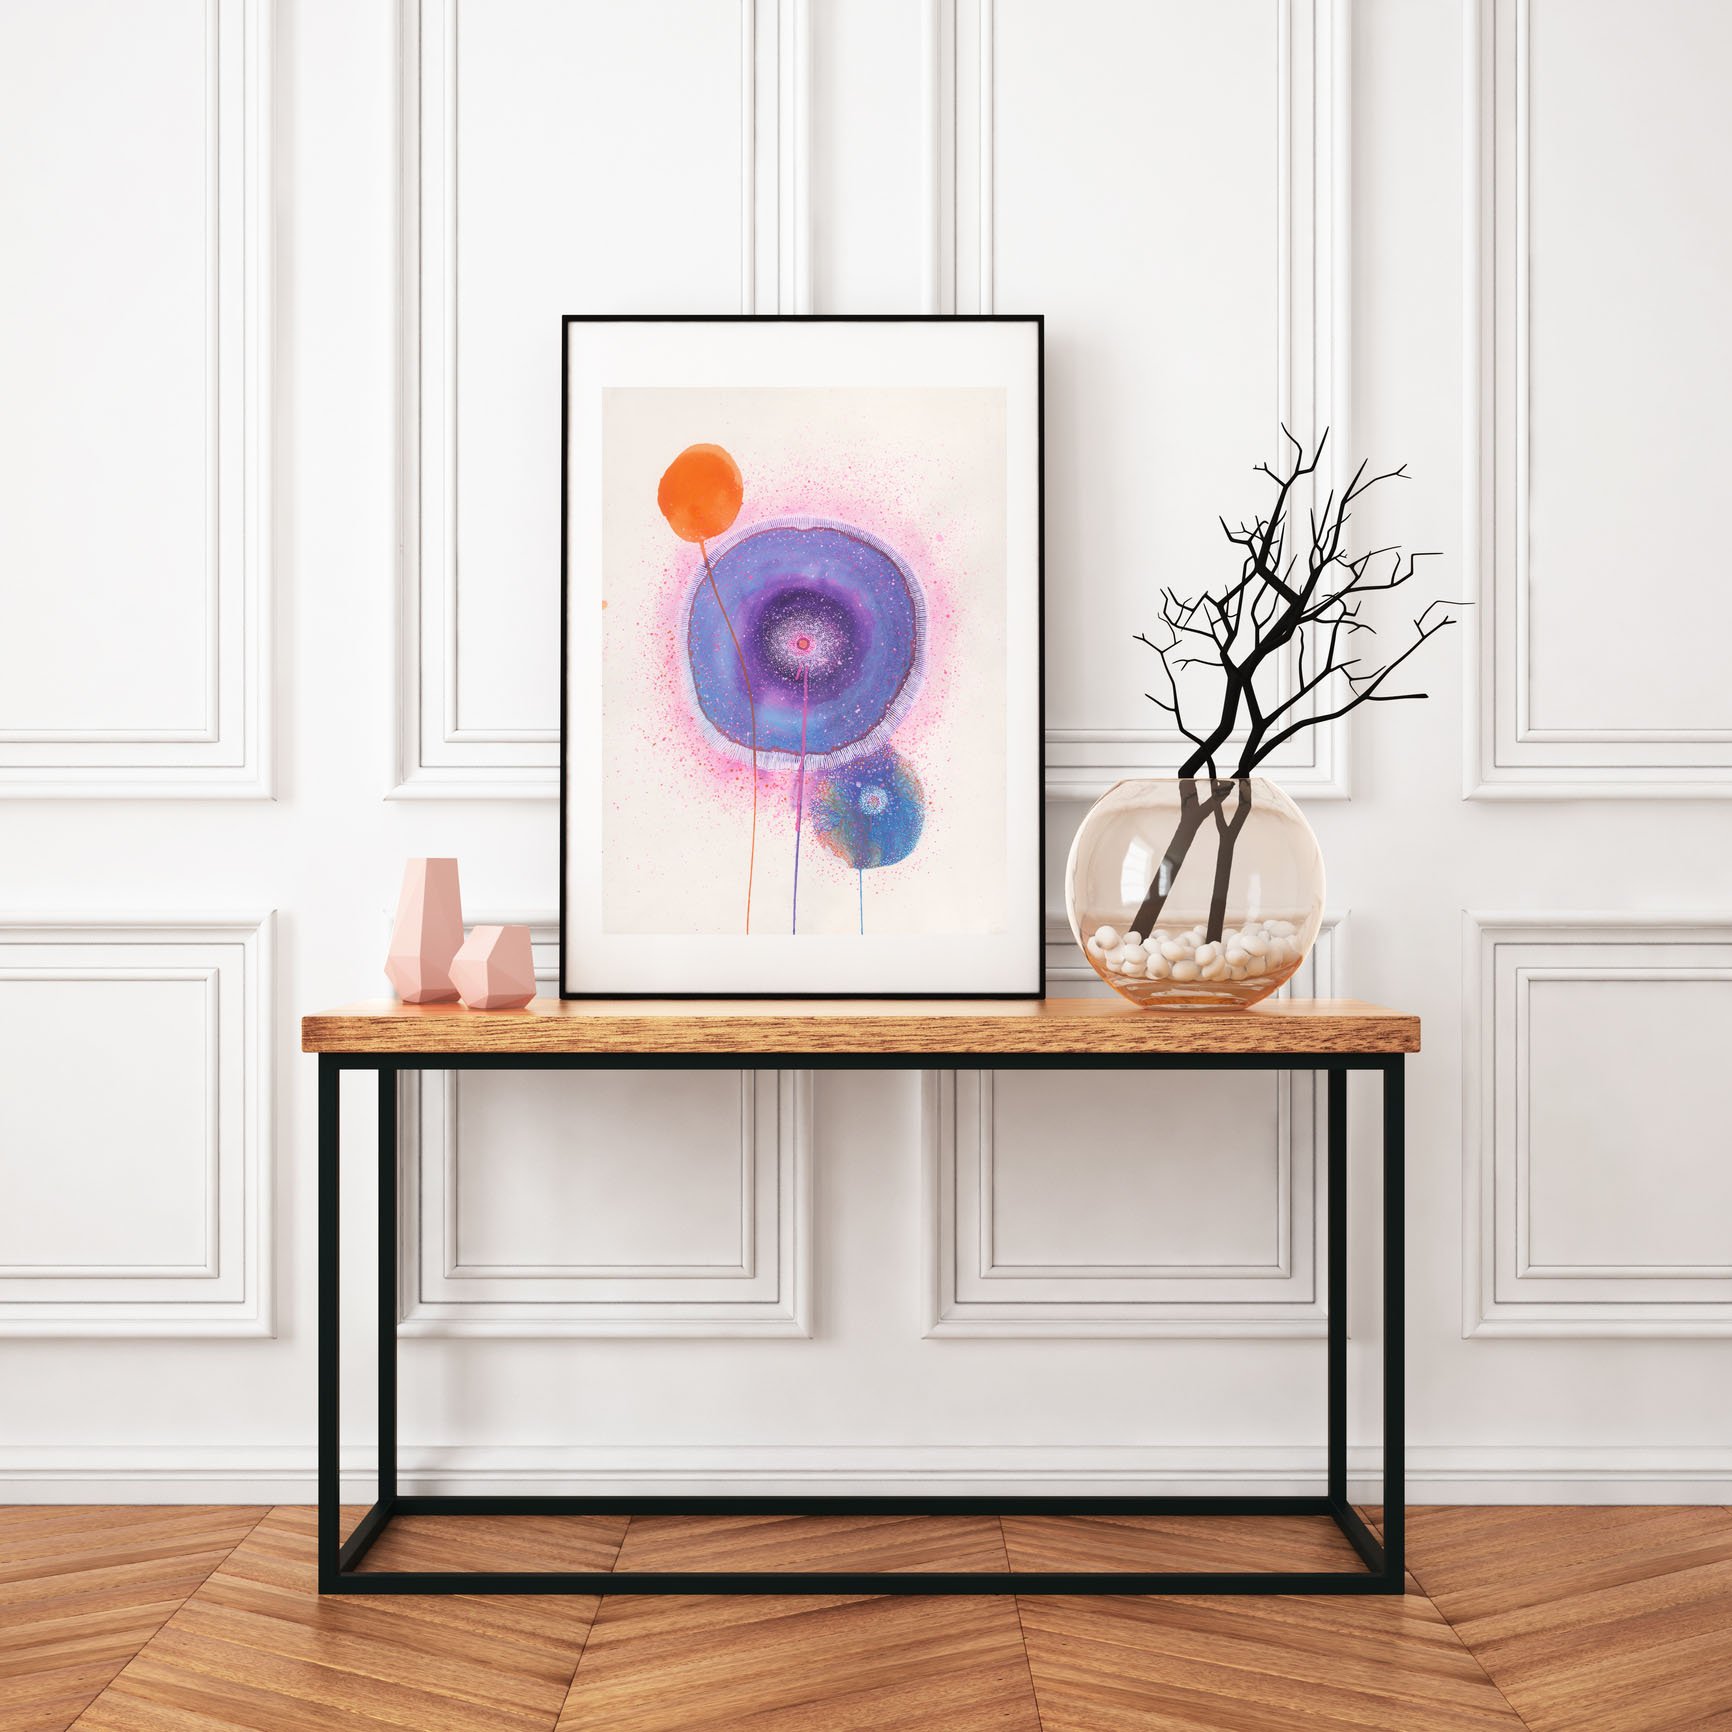 Carla Filipe Australian Artist Sacred Ovum Life begins from within 2018 - mixed media on watercolour paper in situ